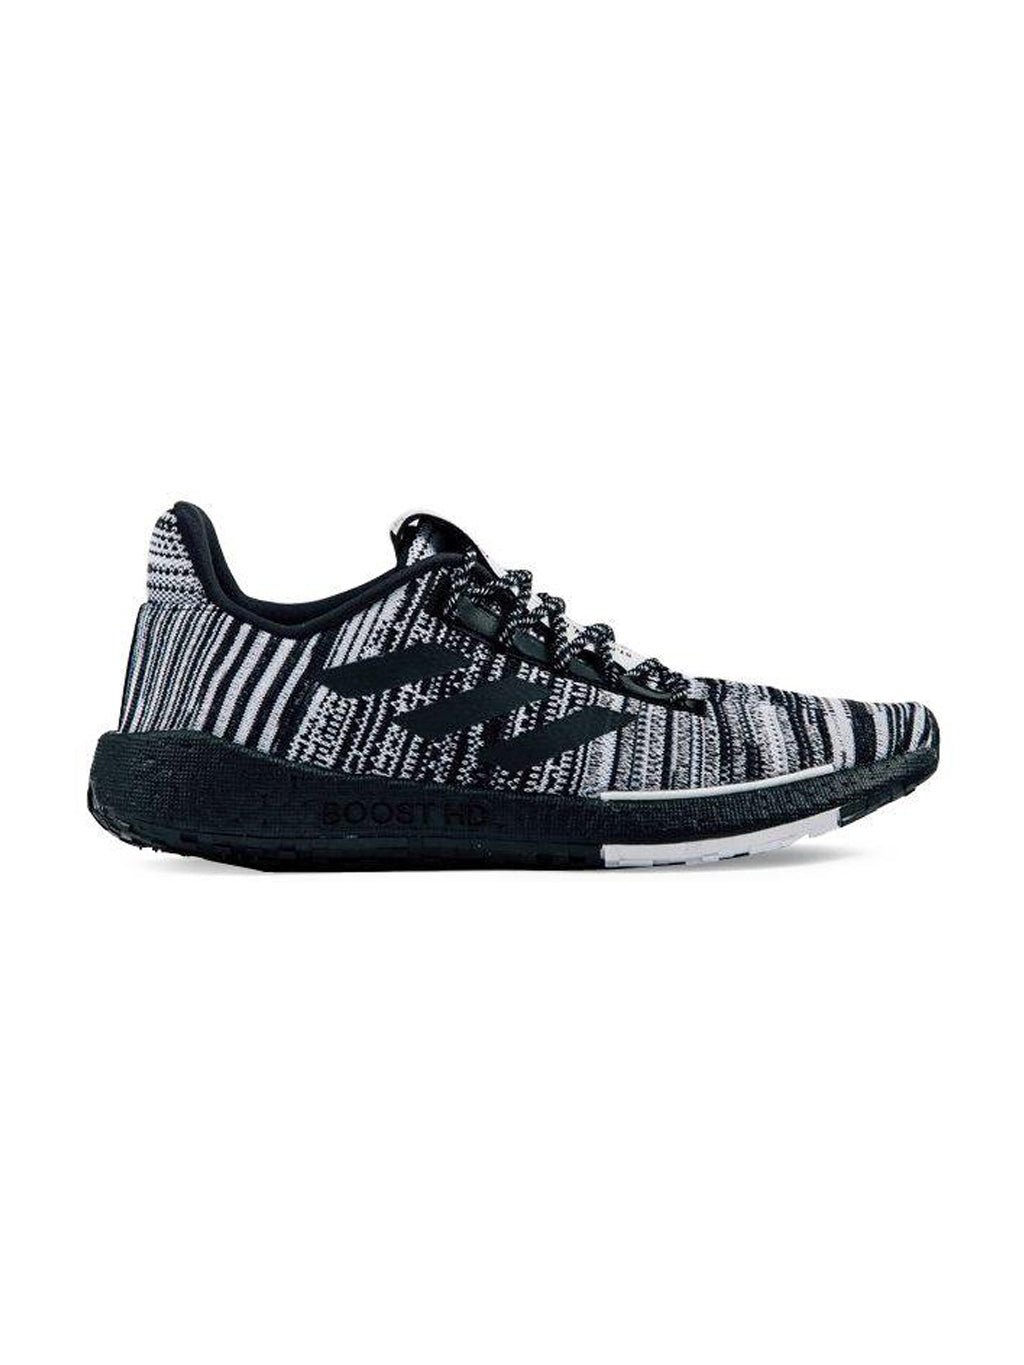 Black & White Pulseboost HD Missoni Sneakers